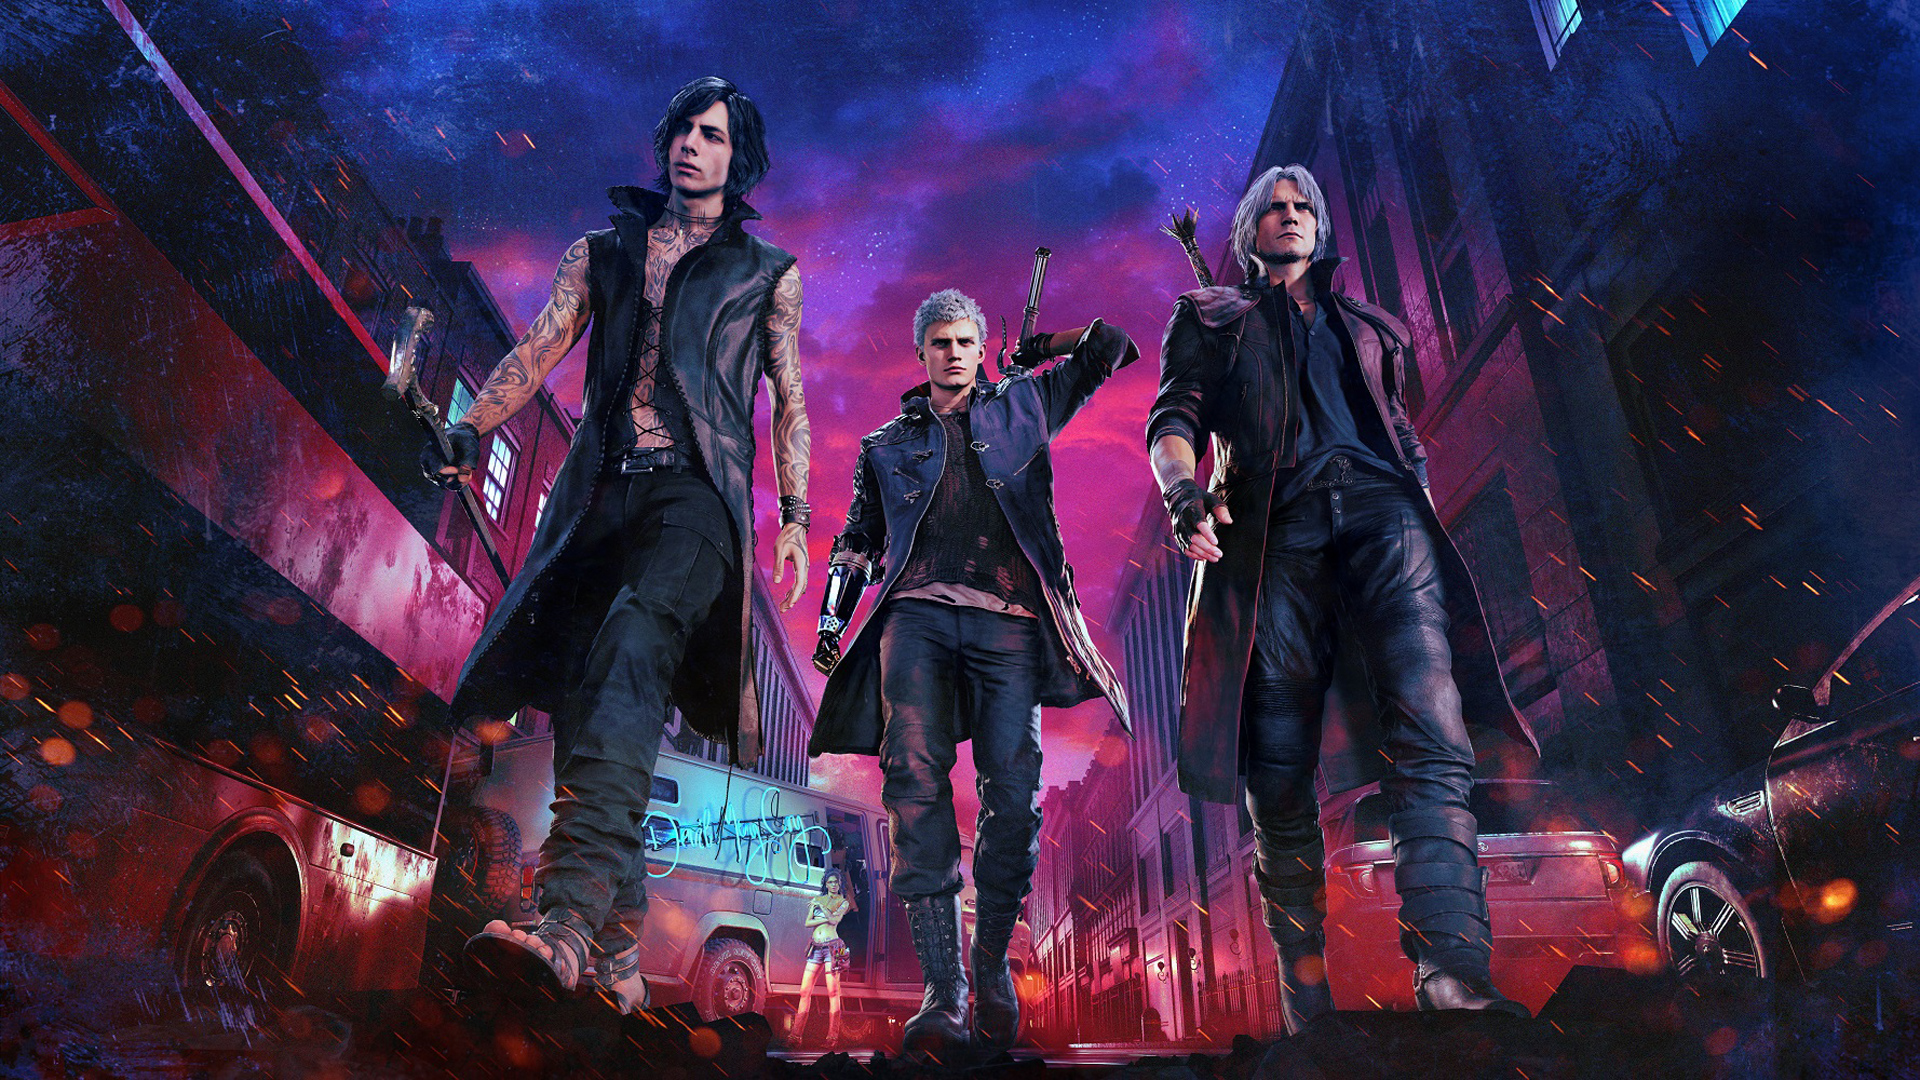 2019 Devil May Cry 5 1080p Hd Games 4k Wallpapers Images